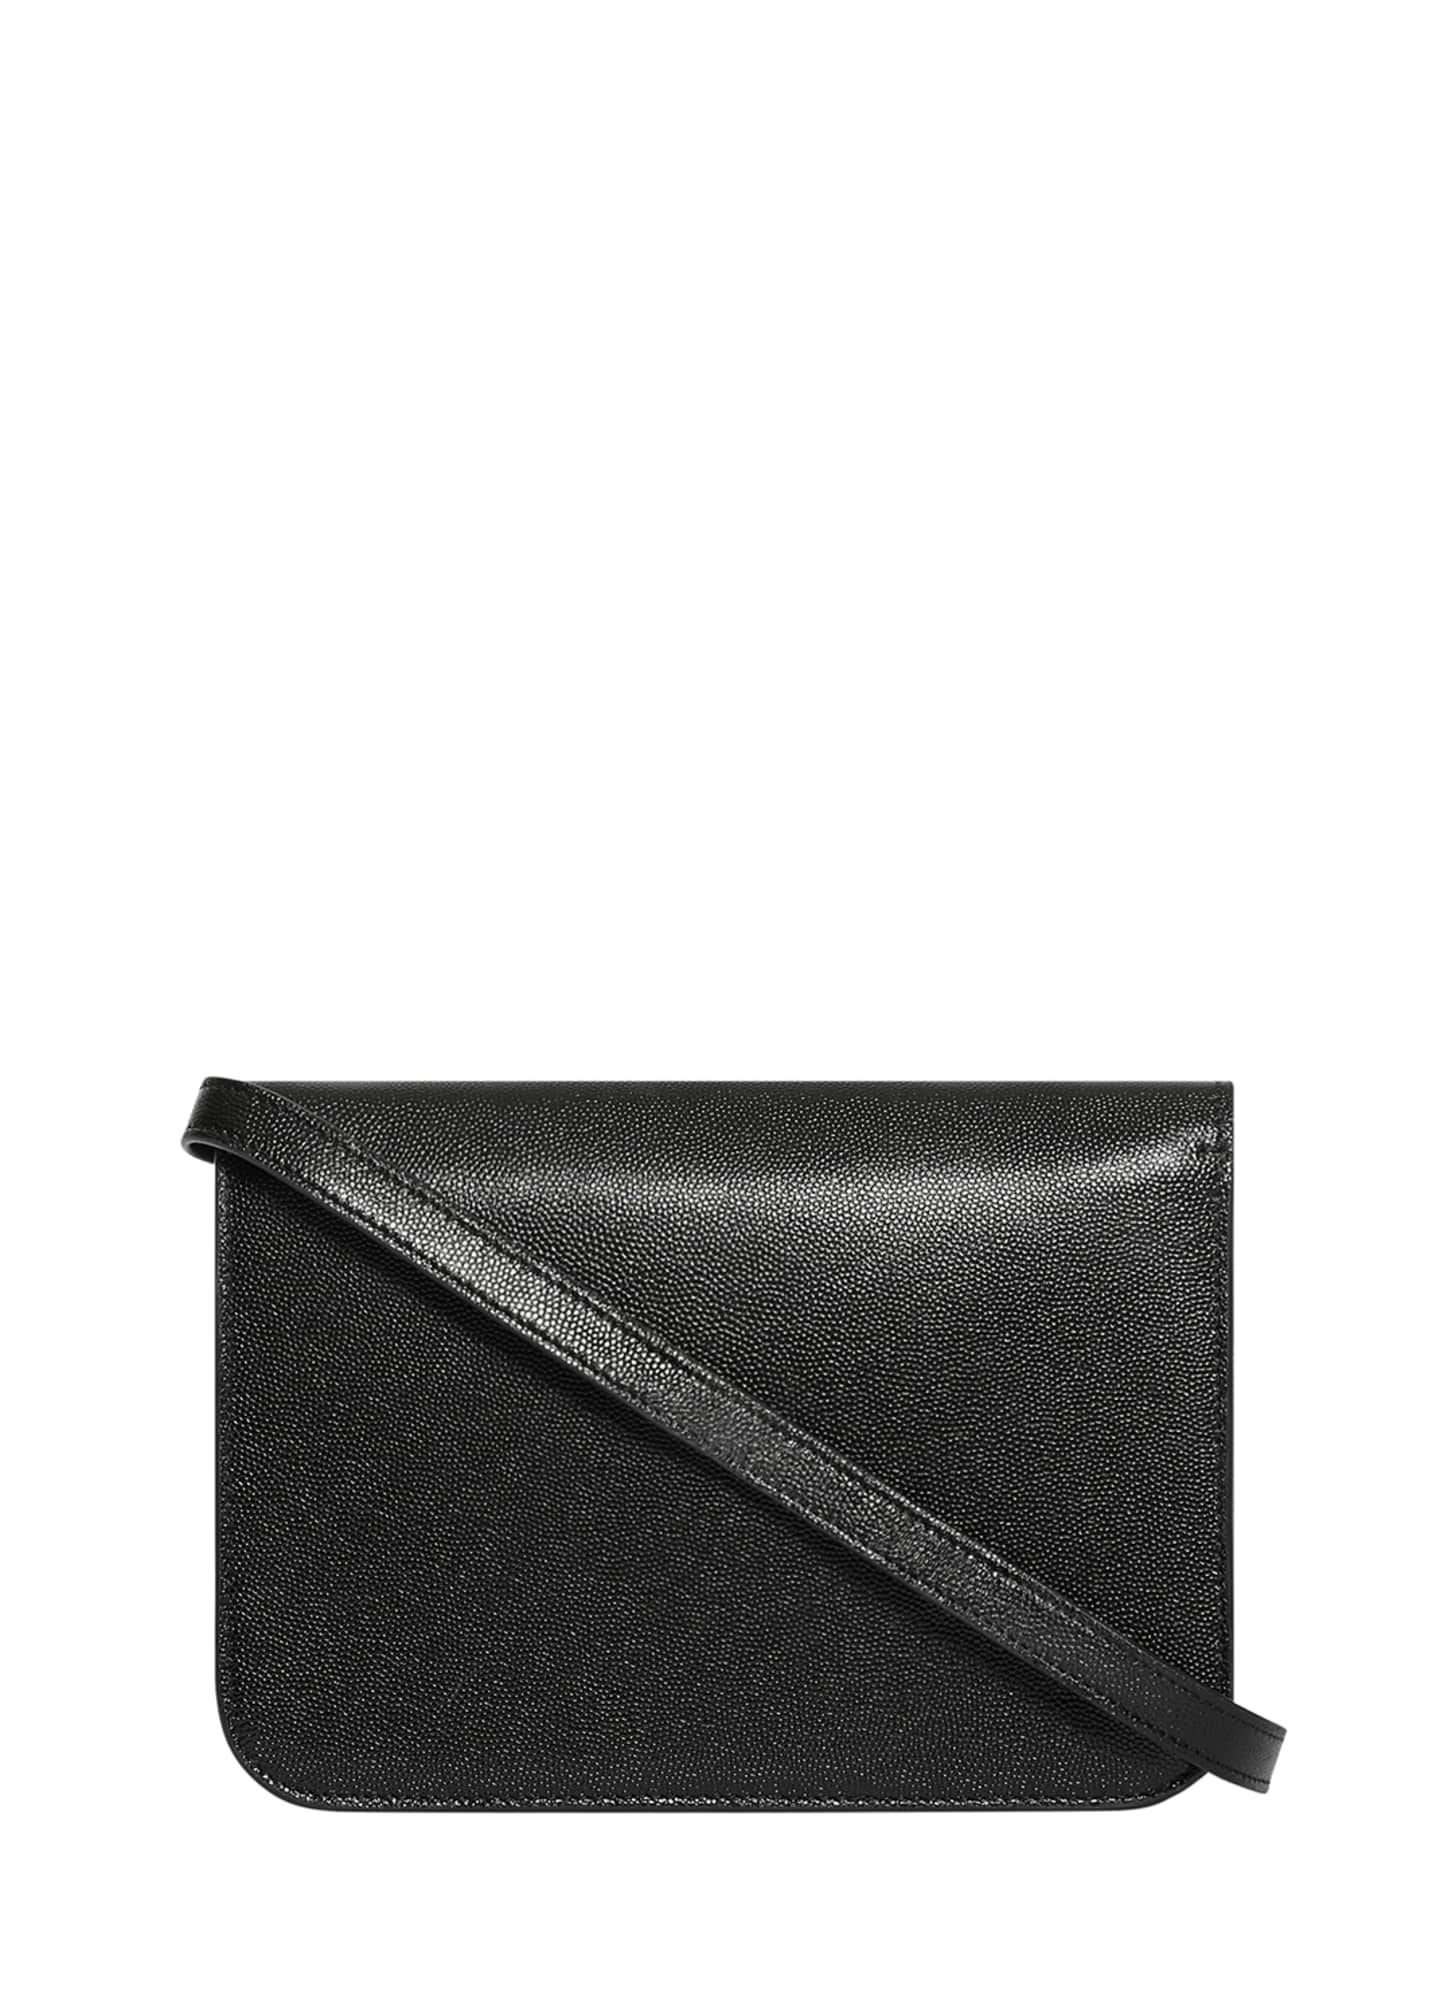 Image 3 of 4: Grainy Caviar Small Crossbody Bag